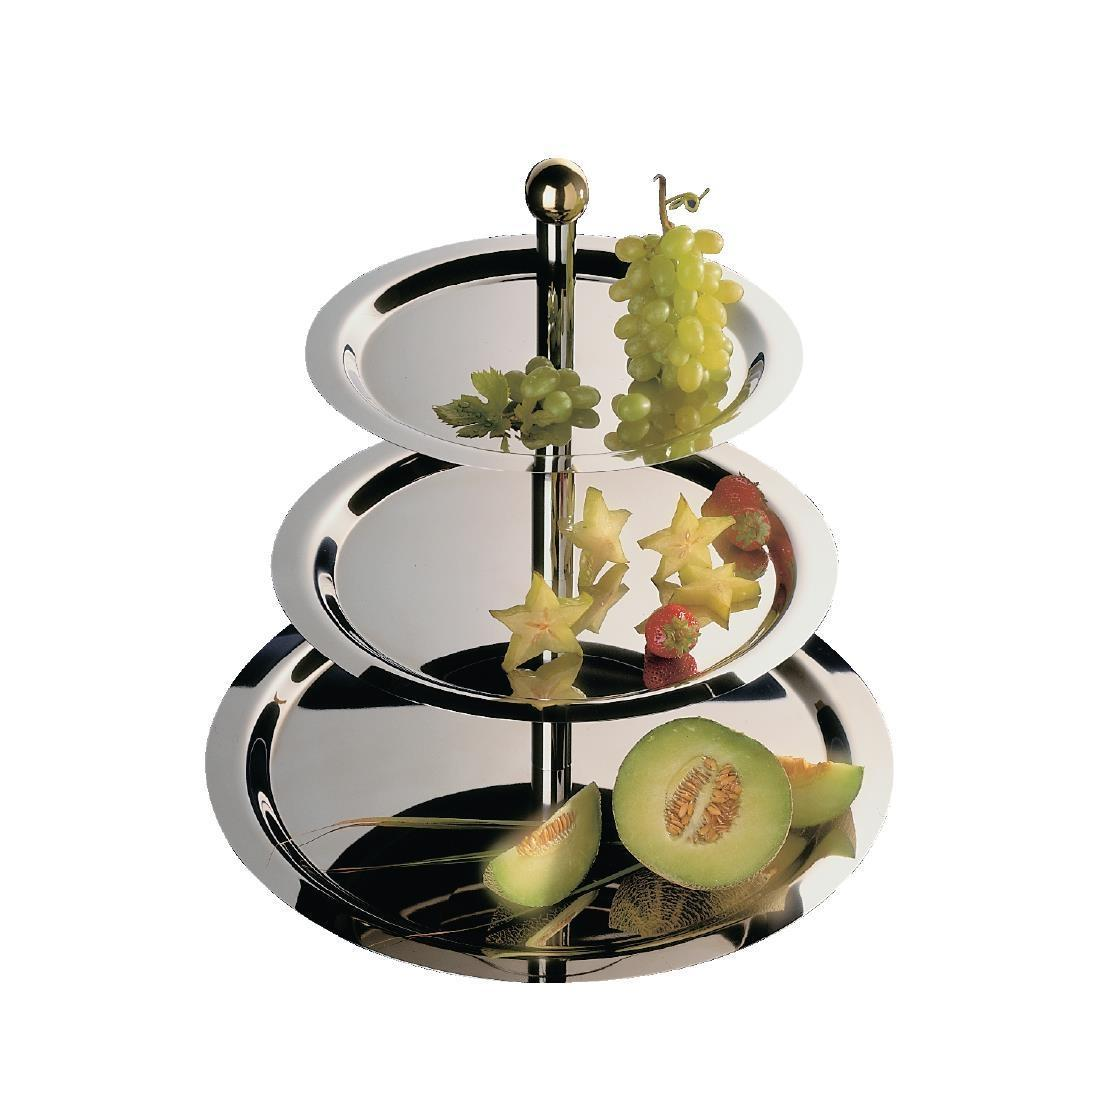 Stainless Steel 3 Tier Afternoon Tea Stand - Each - S024